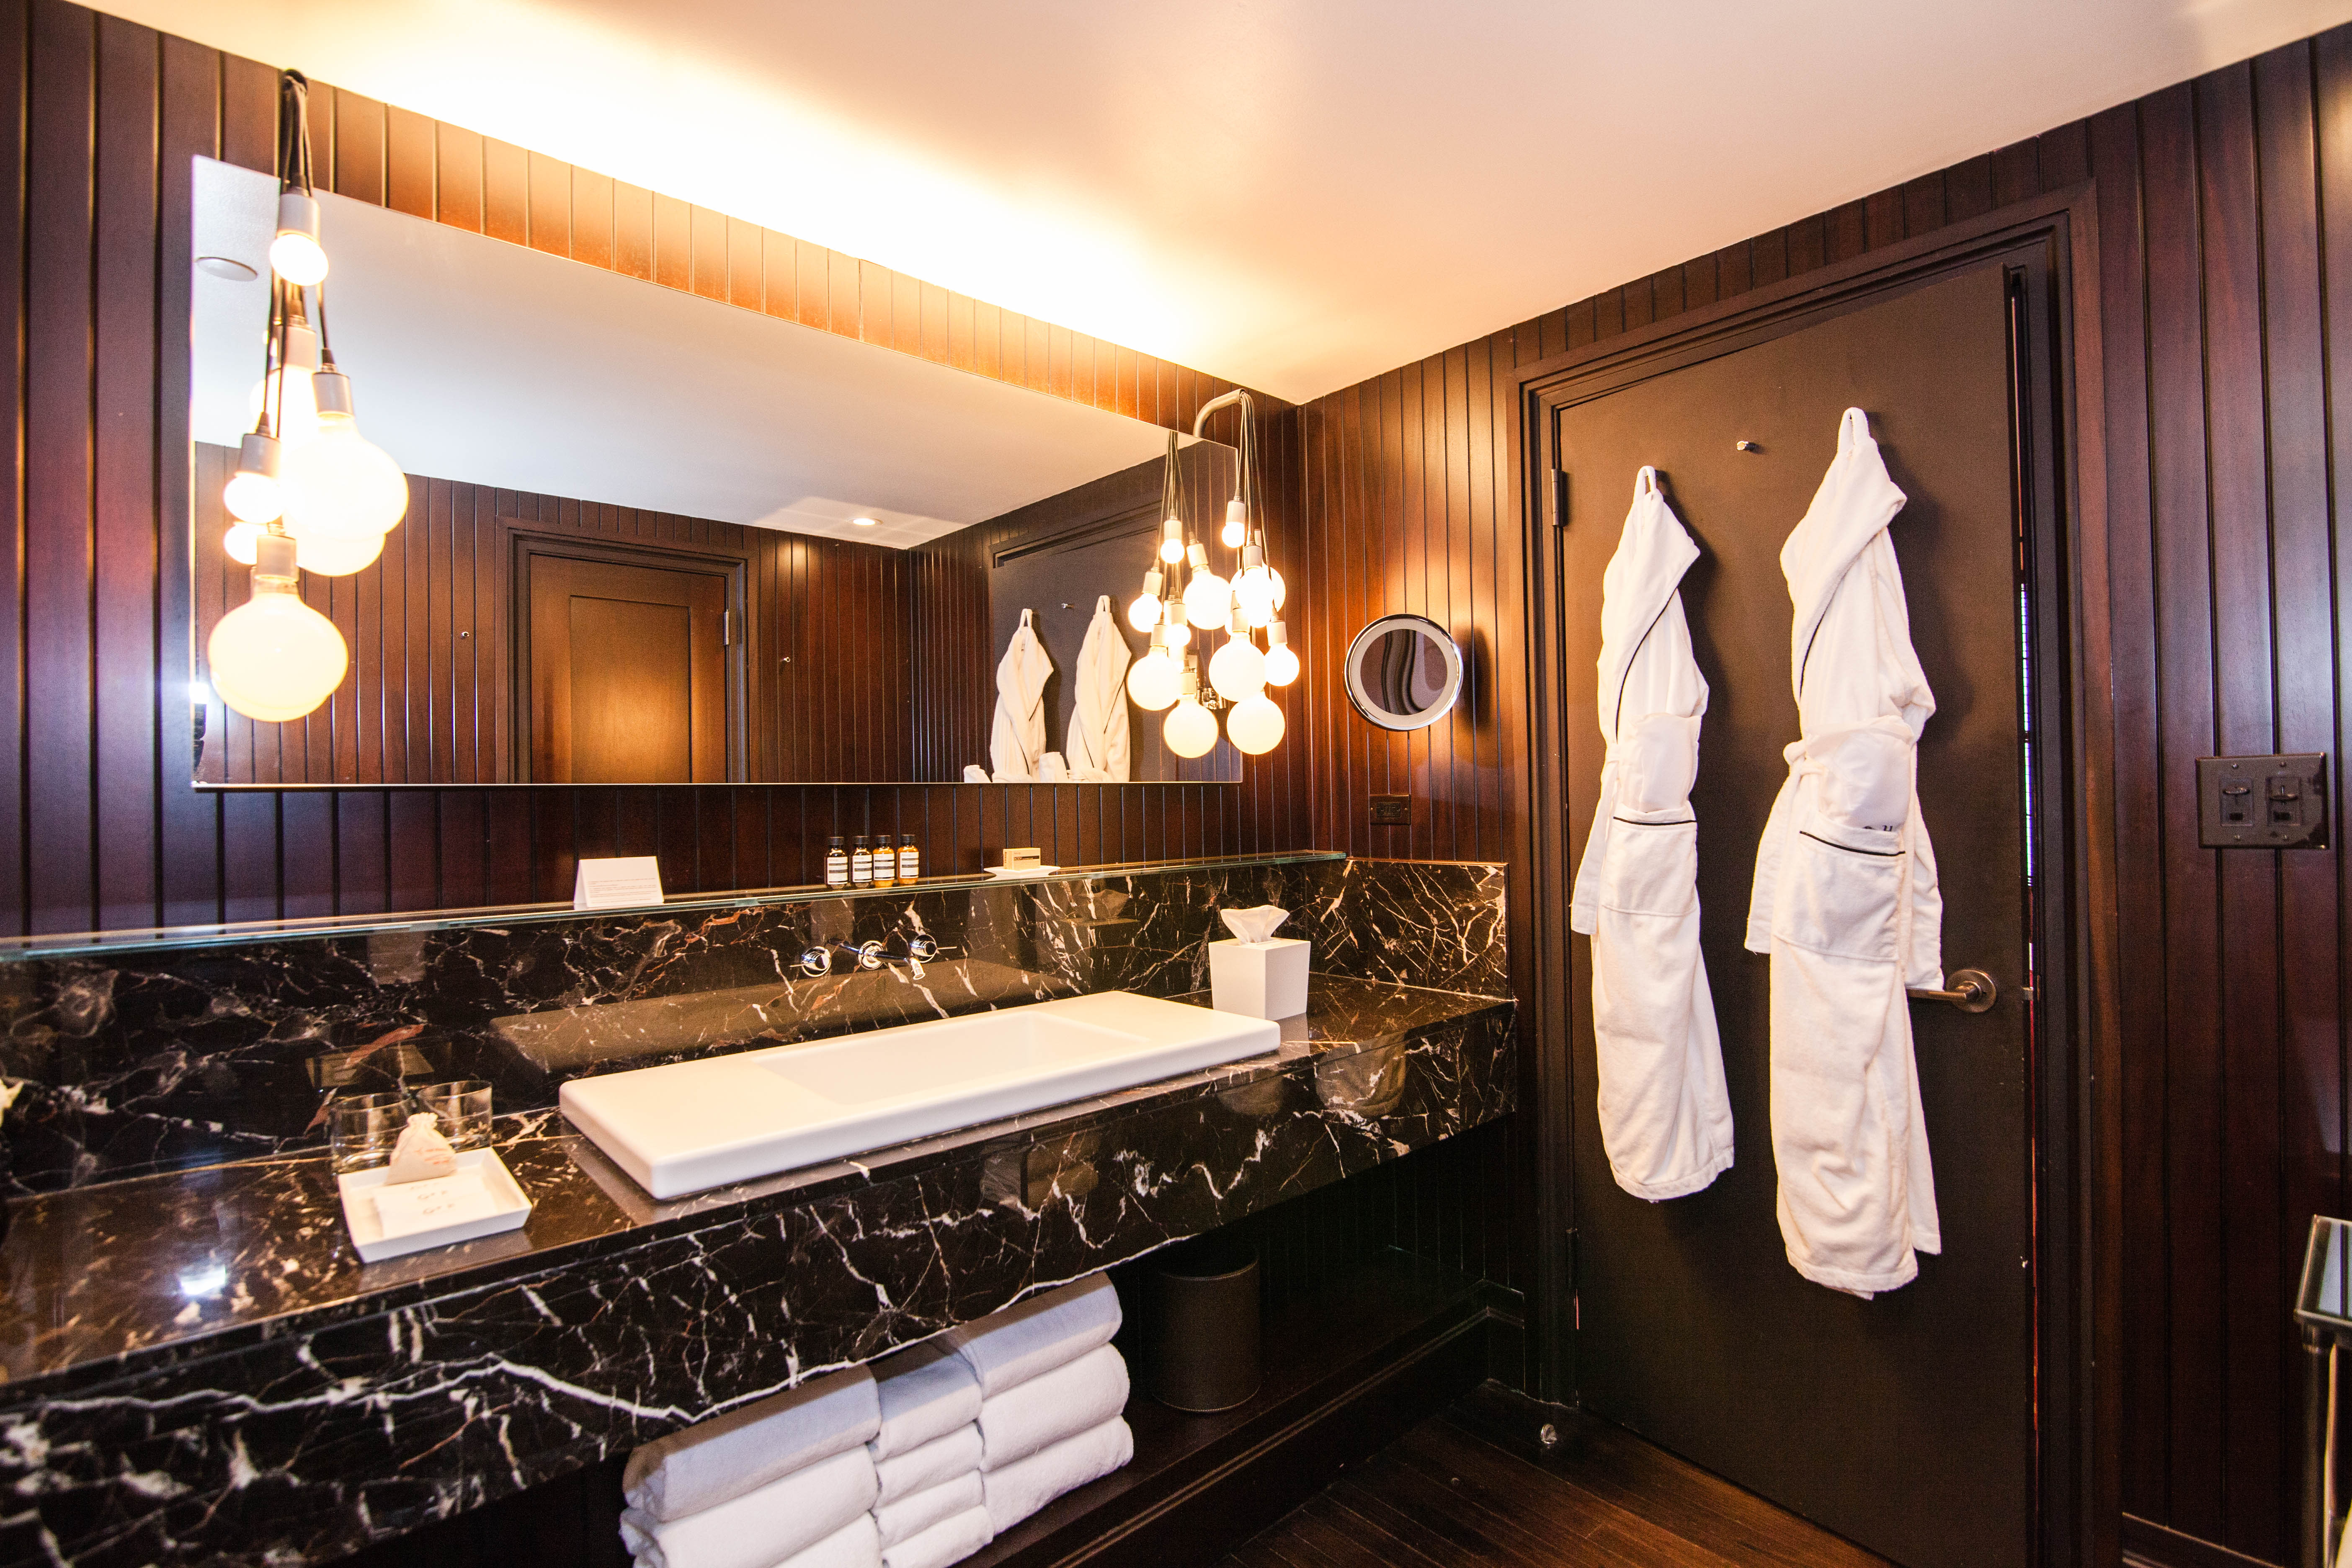 Americas most luxurious hotel bathrooms